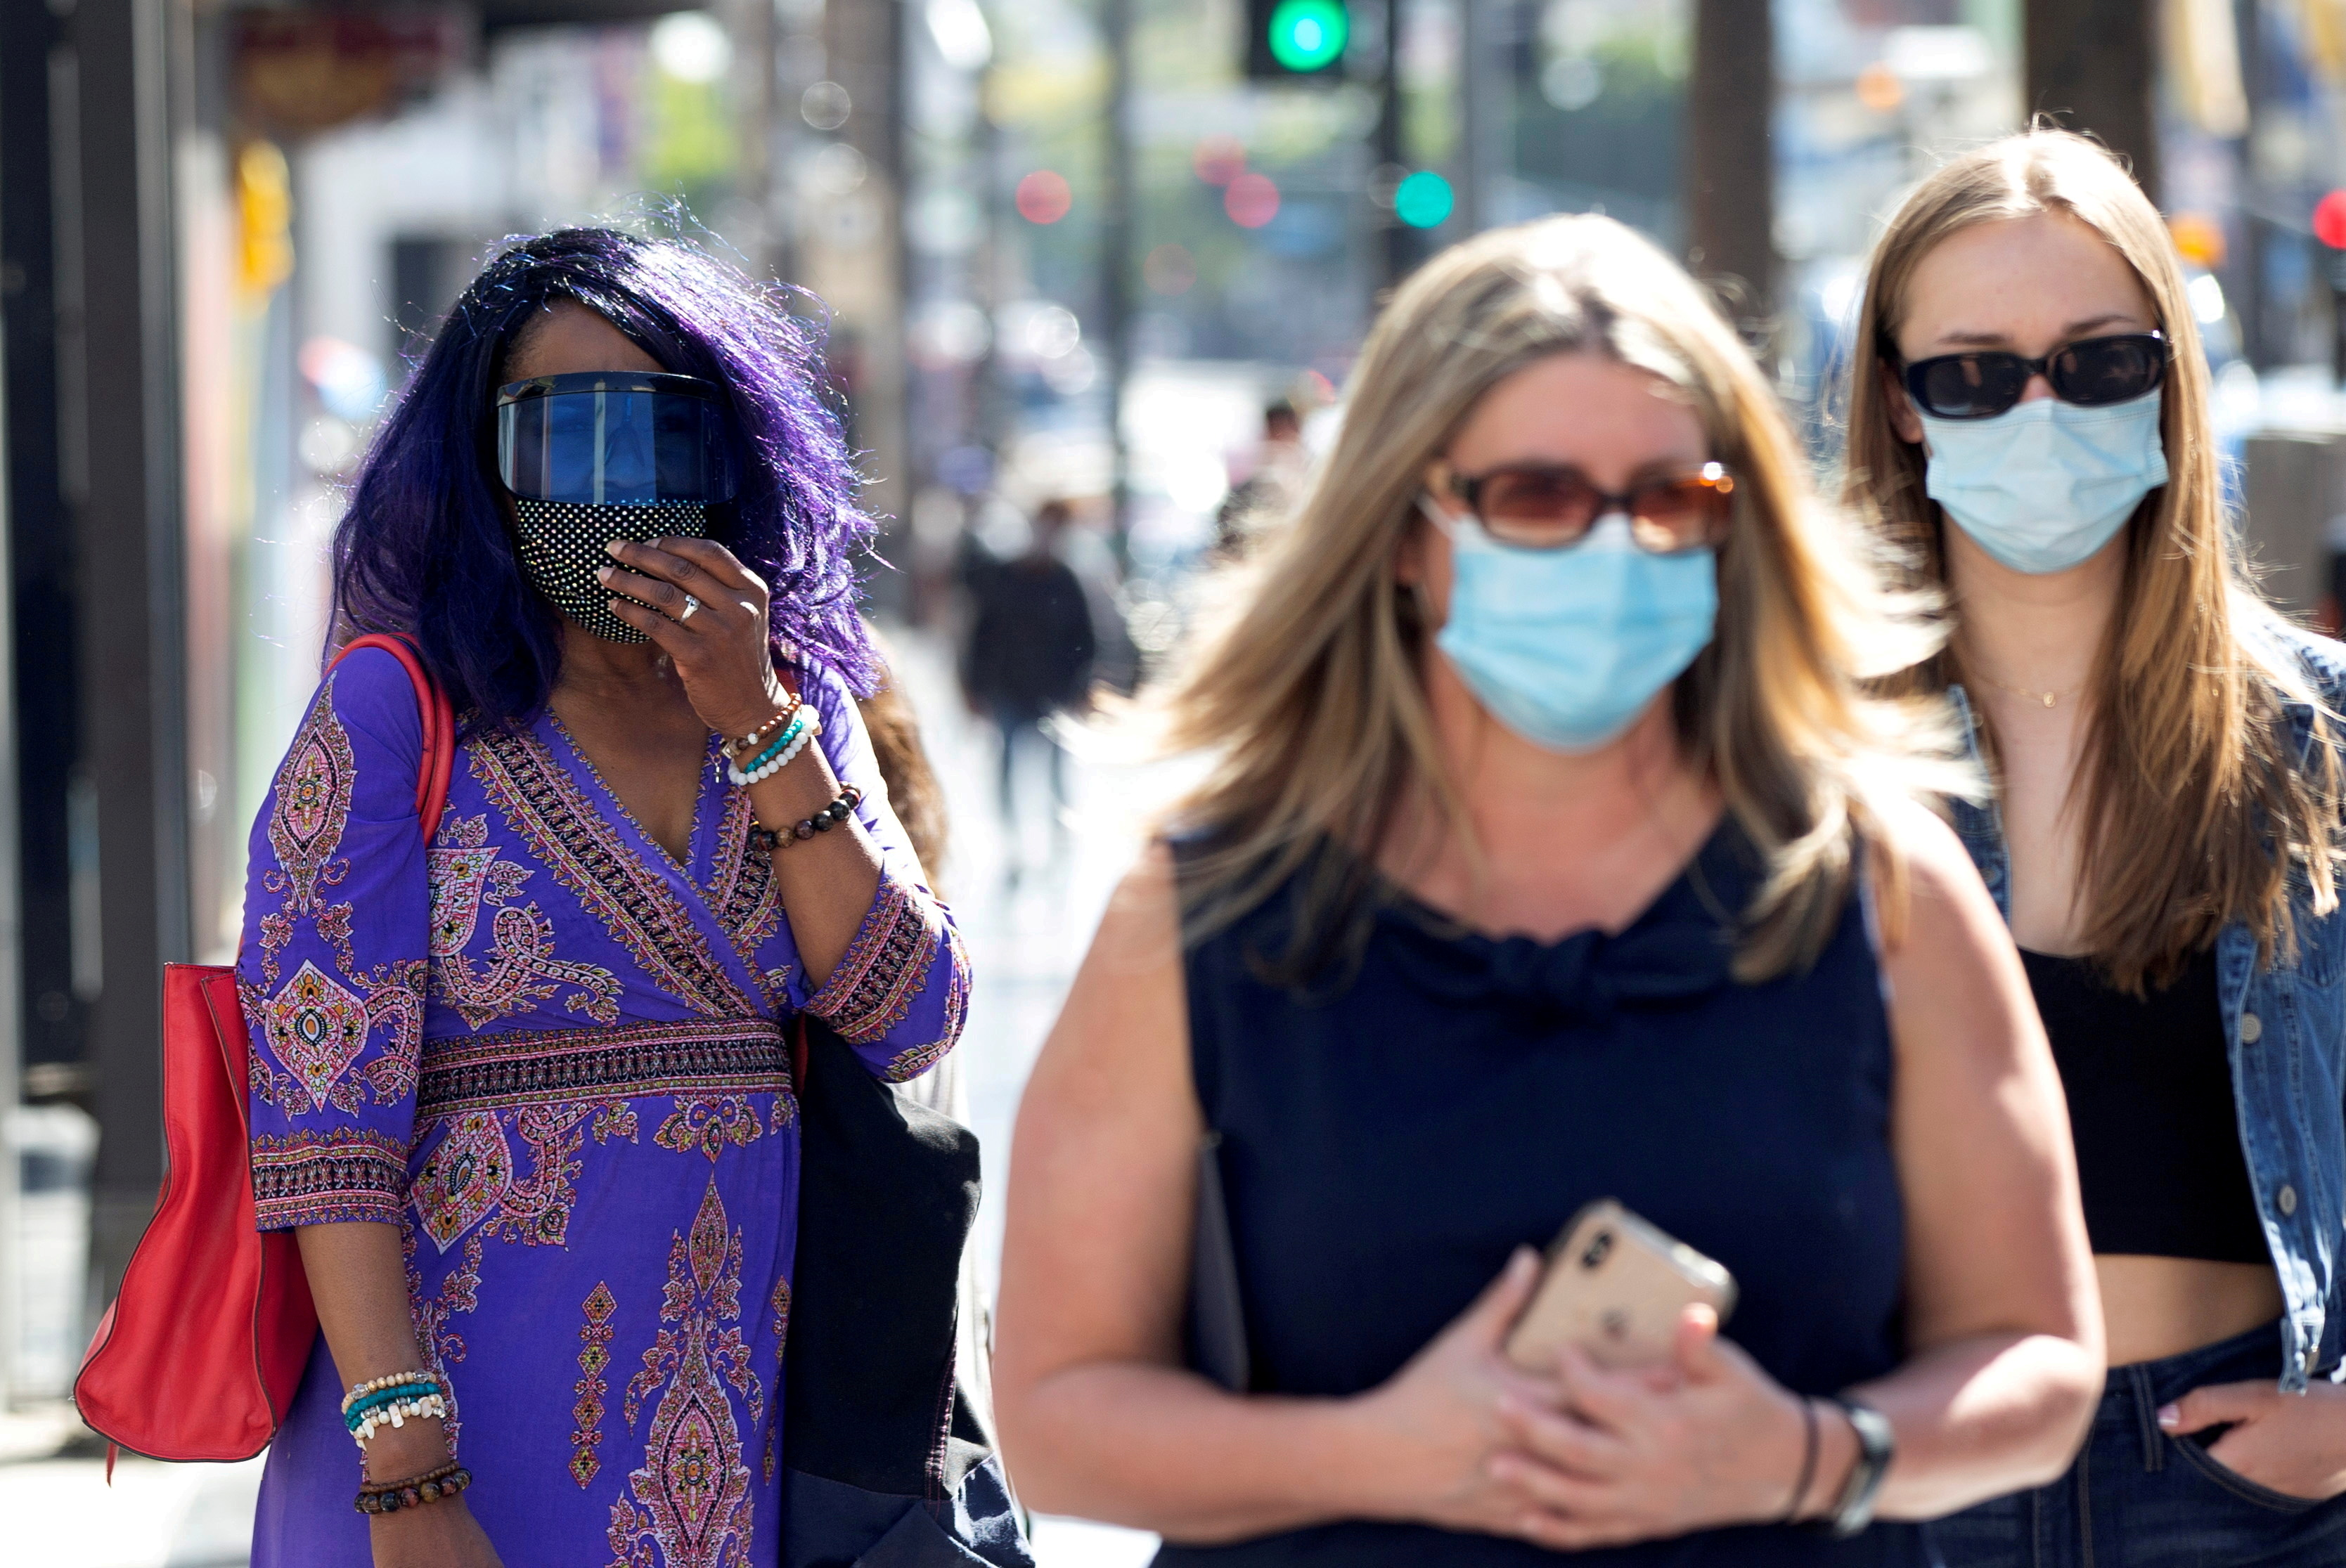 People wearing face protective masks walk on Hollywood Blvd during the outbreak of the coronavirus disease (COVID-19), in Los Angeles, California, U.S., March 29, 2021.  REUTERS/Mario Anzuoni/File Photo